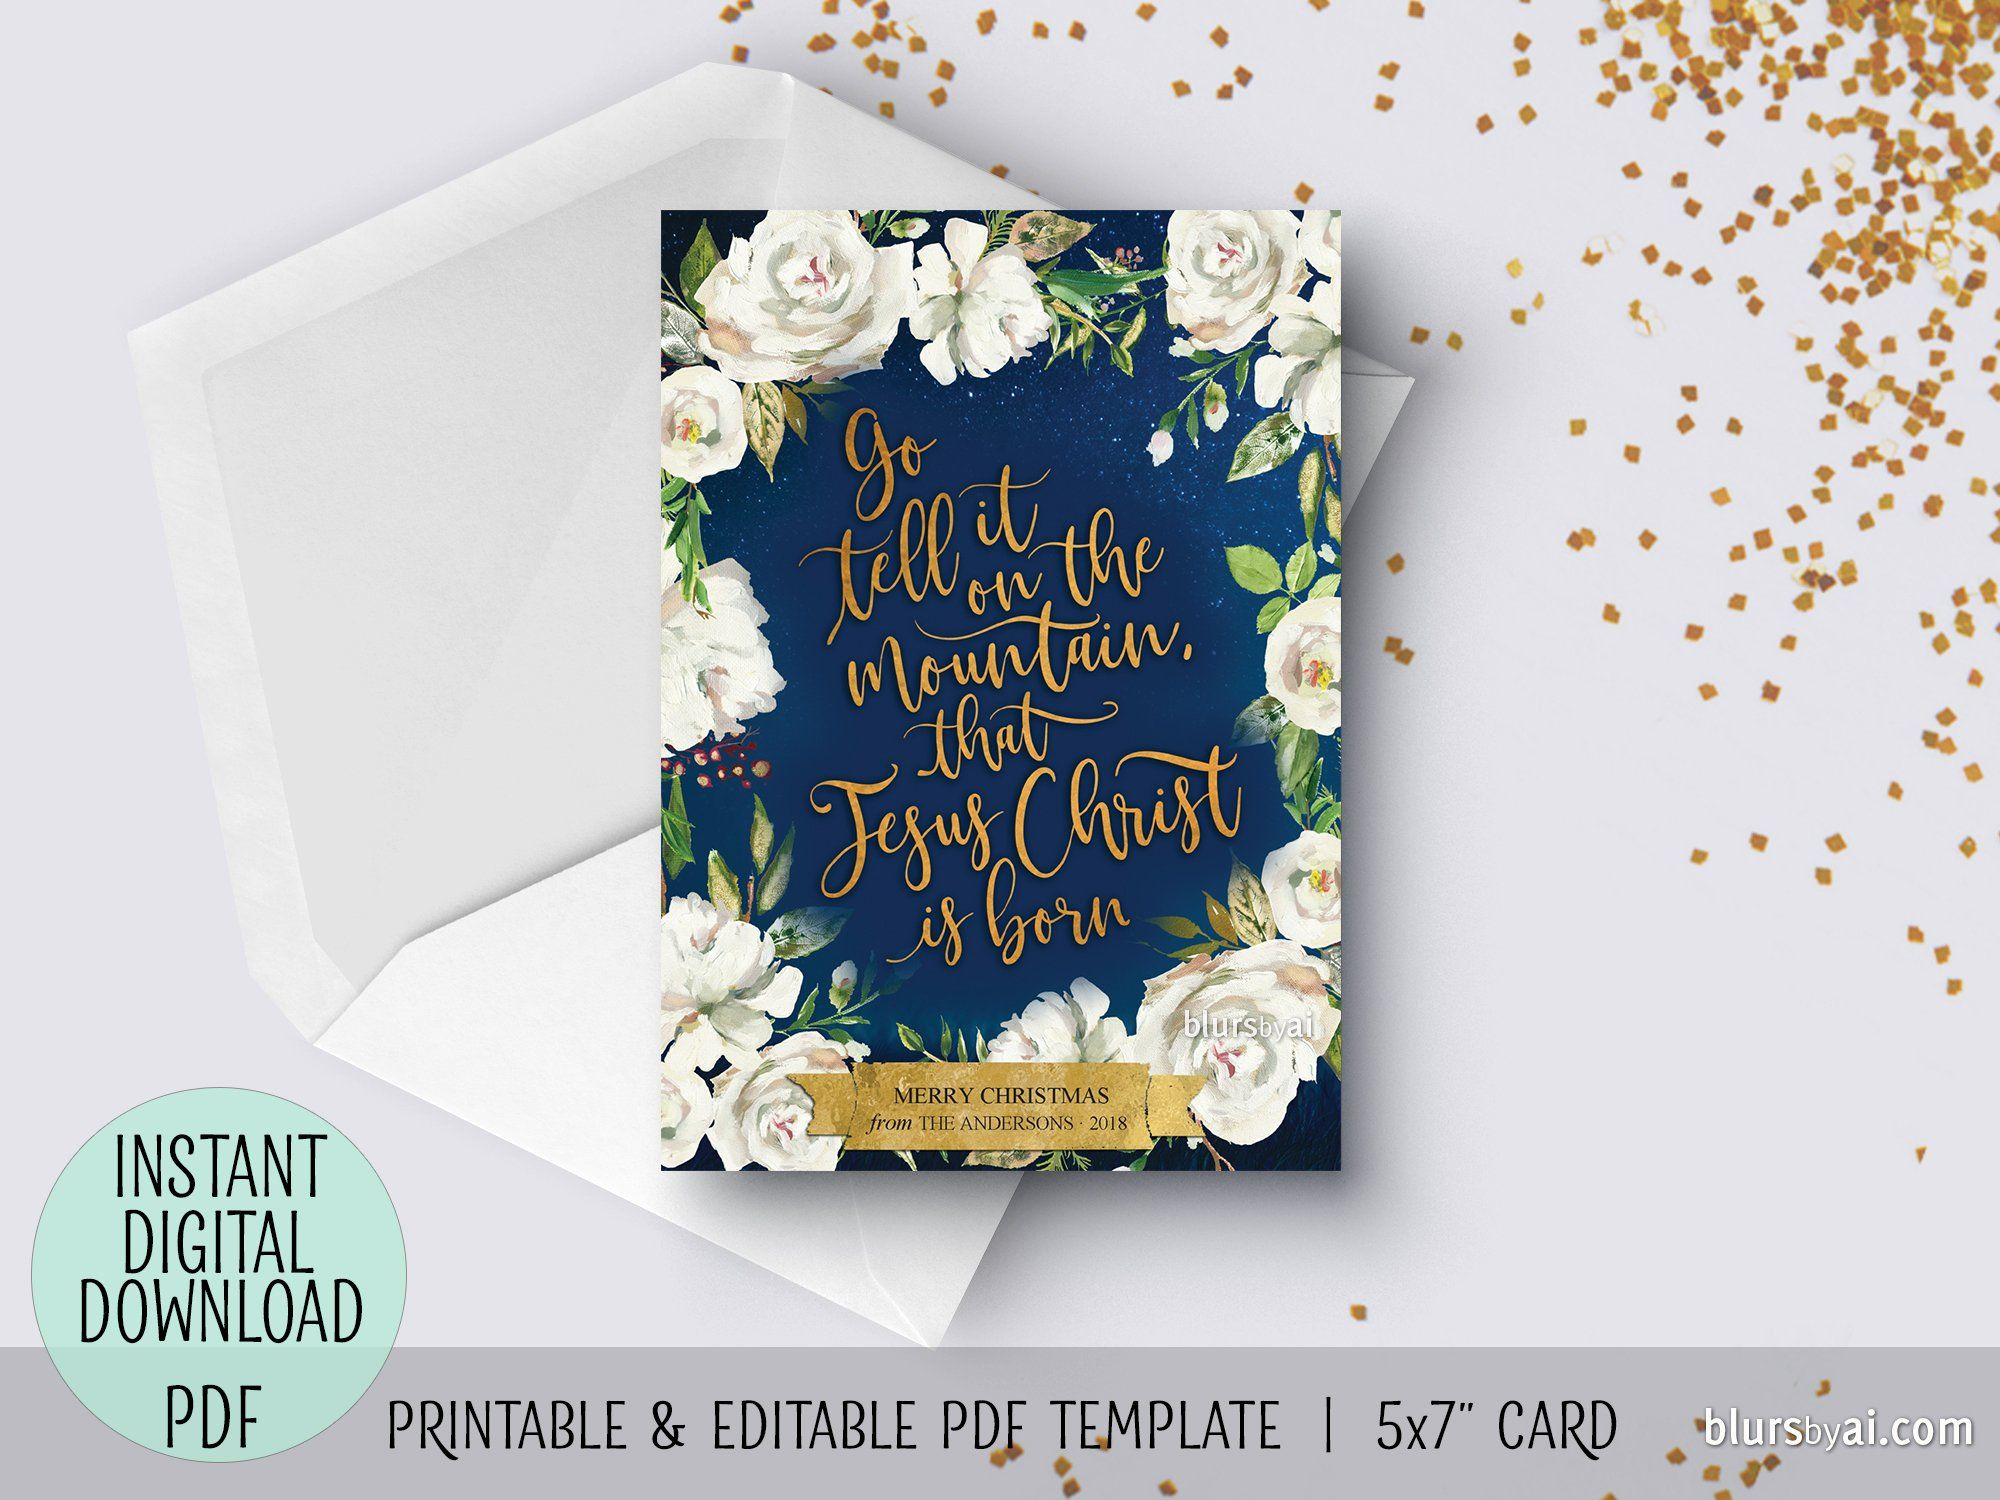 Editable Pdf Christmas Card Template Go Tell It On The Mountain In Navy Blue Floral Background Christmas Card Template Christmas Cards Floral Cards